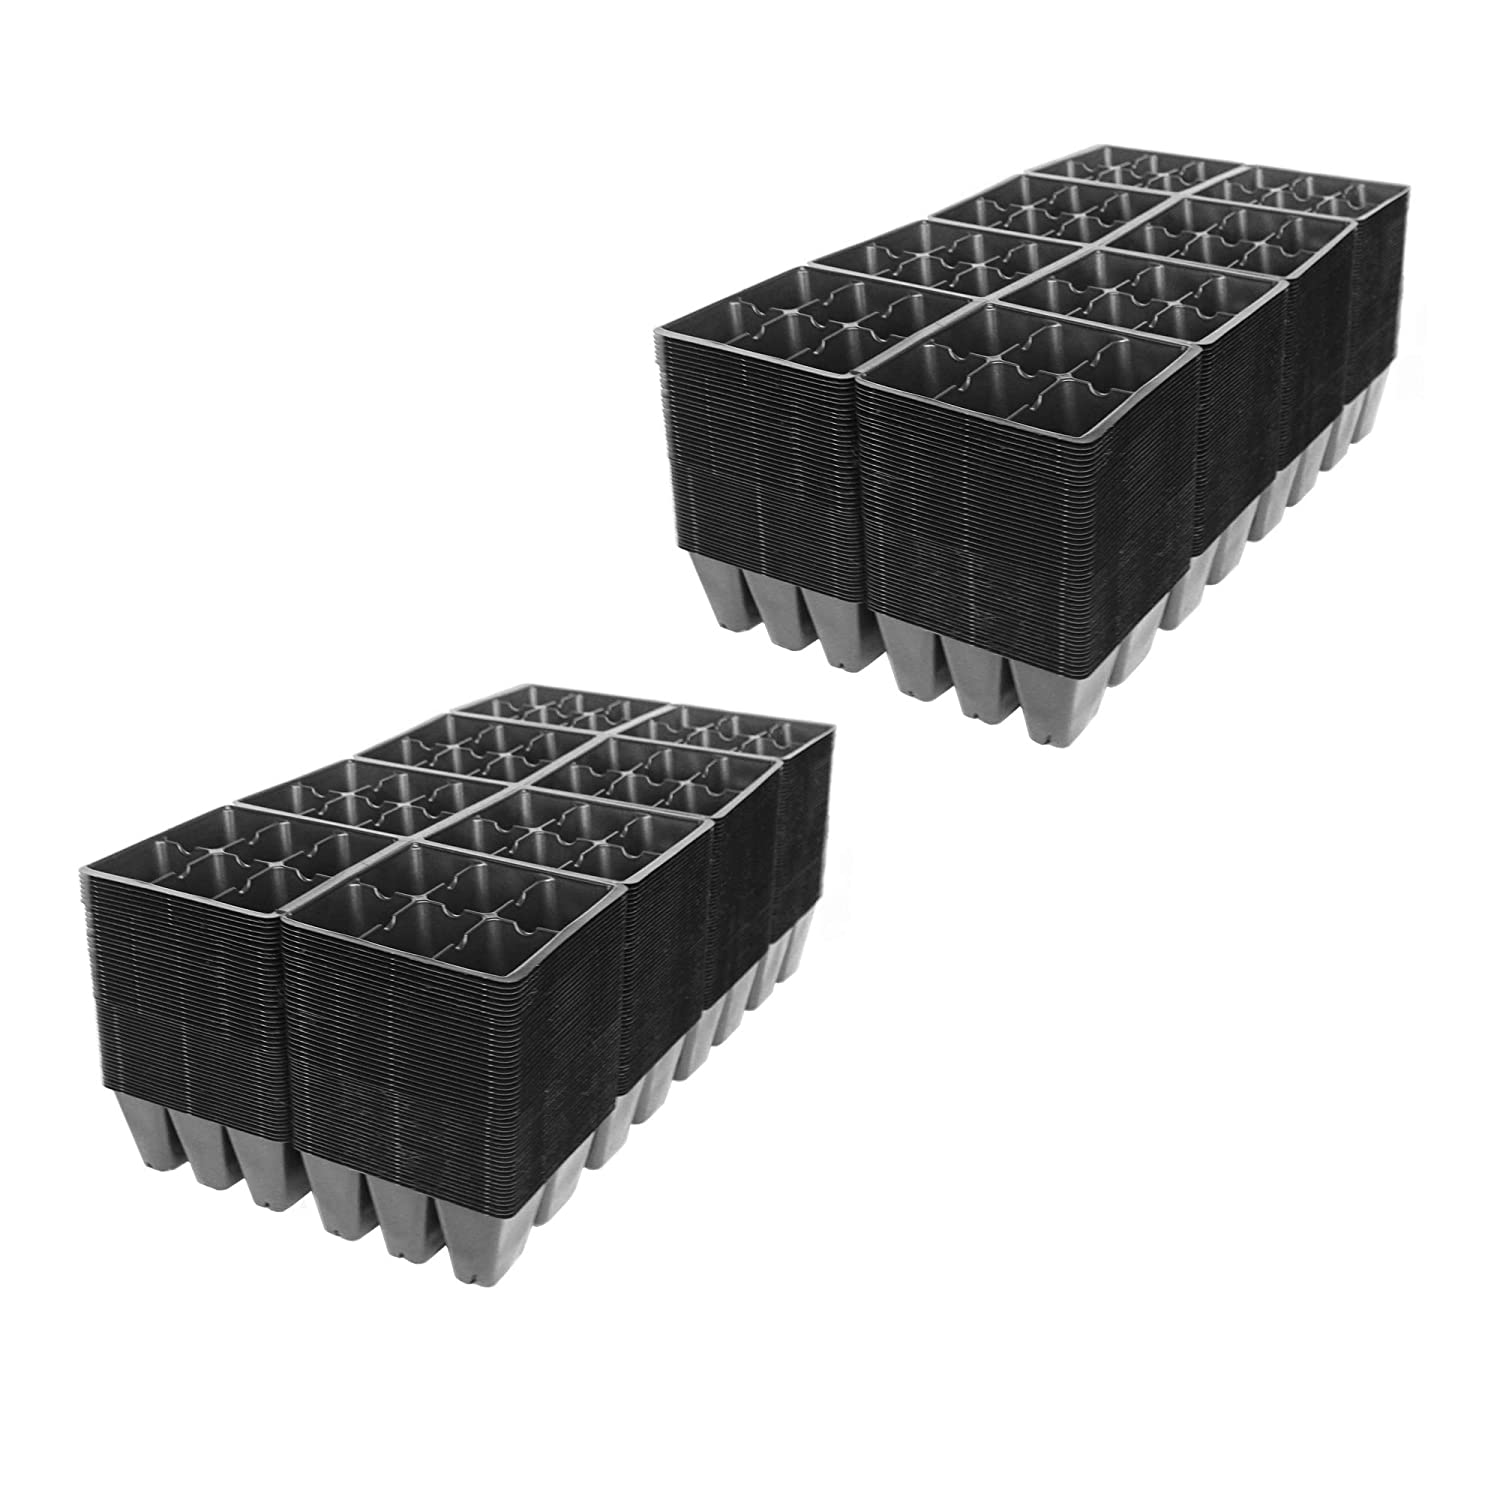 Greenhouse 5 Sheet of 48 Planting Pot Cells Each 2x3 Nested x8 Configuration Perforated Nursery Handy Pantry Black Plastic Garden Tray Inserts Gardening